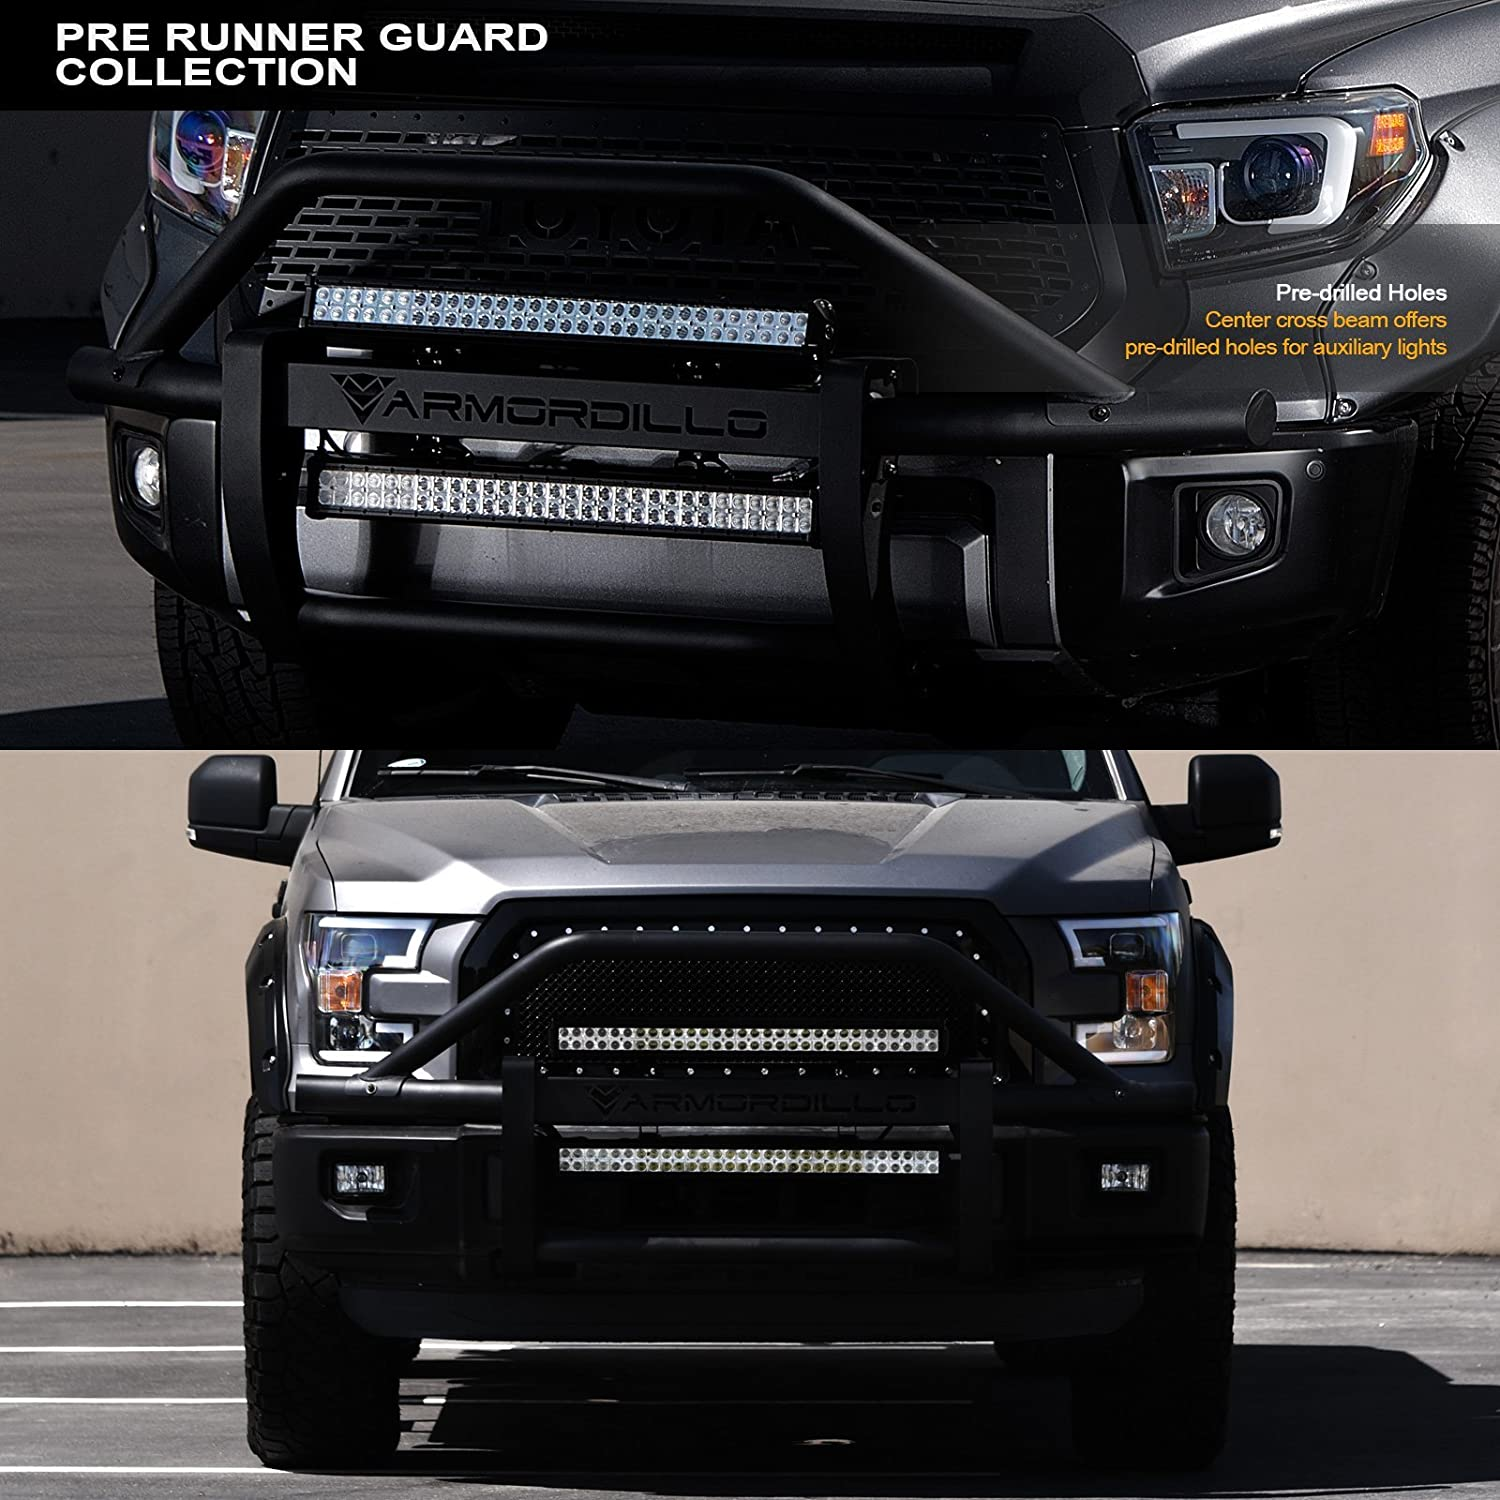 Matte Black For 14-18 Chevy Silverado 1500 Armordillo 733469489351 Modular Pre-Runner Bumper Grille Guard with 32 60x CREE LED Light Bar